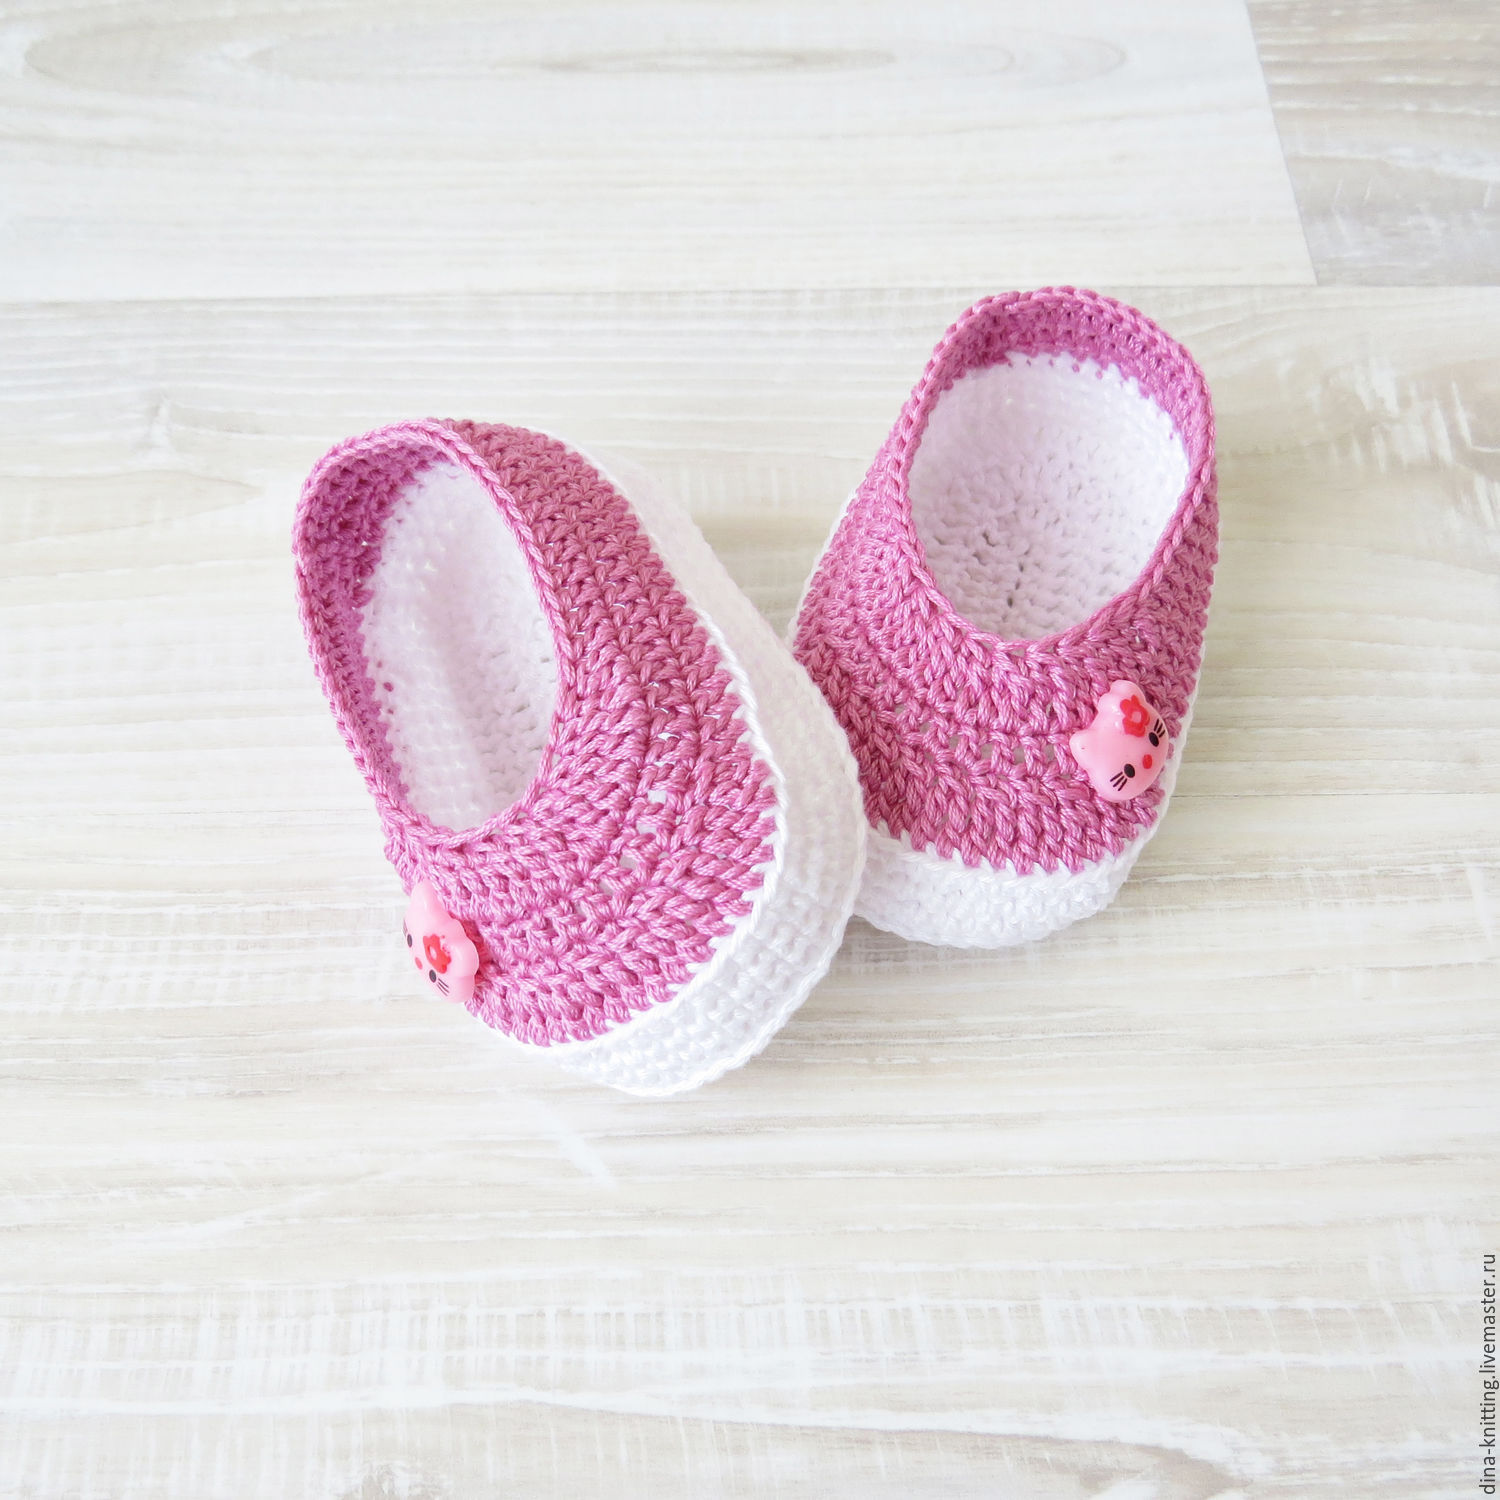 Booties Knitted Booties Girls Baby Booties Baby Ballet Shoes Pink